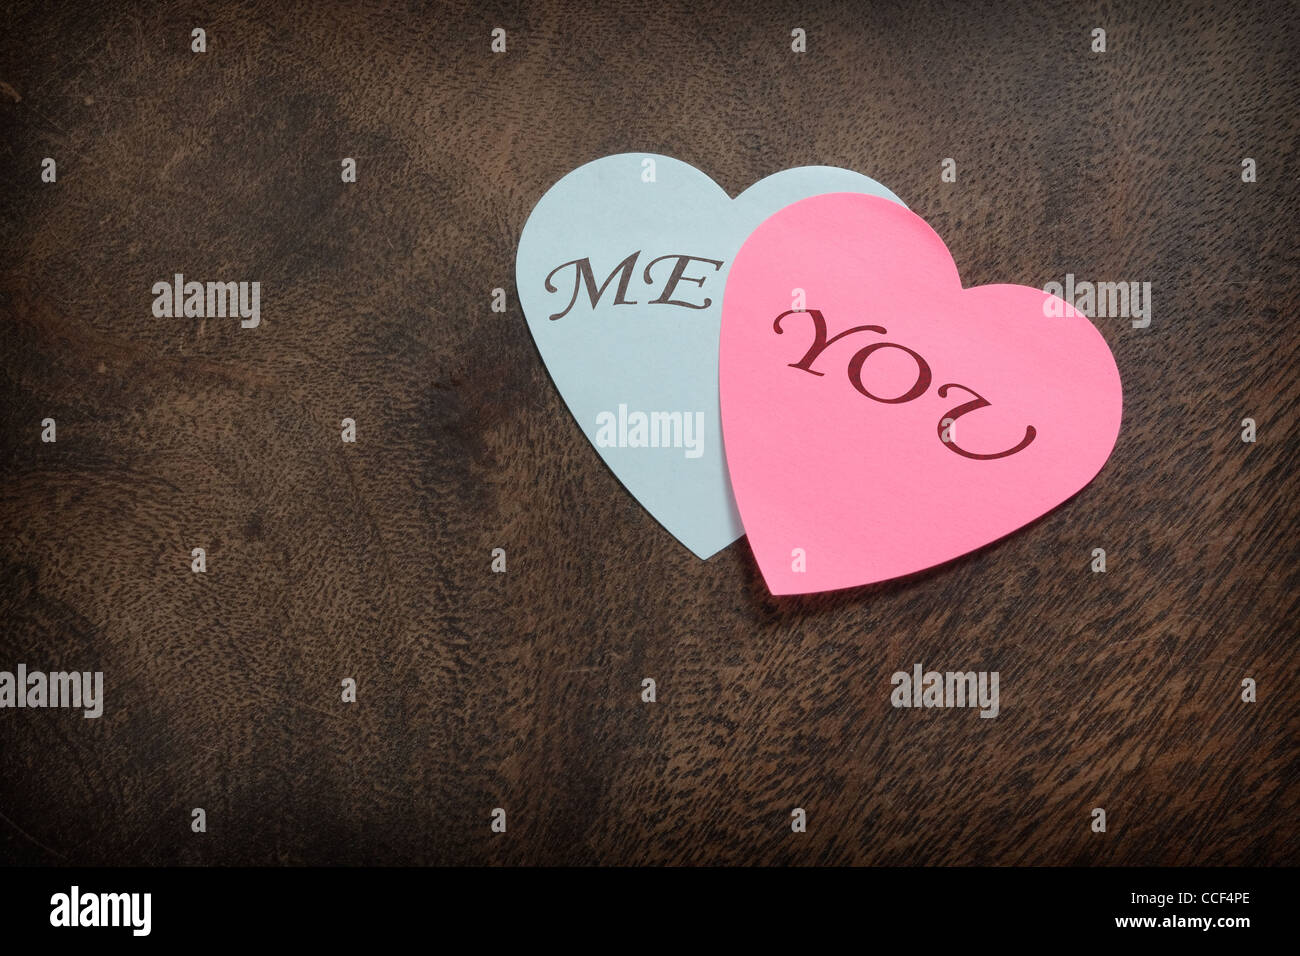 Heart shaped sticky notes on wooden background - Stock Image